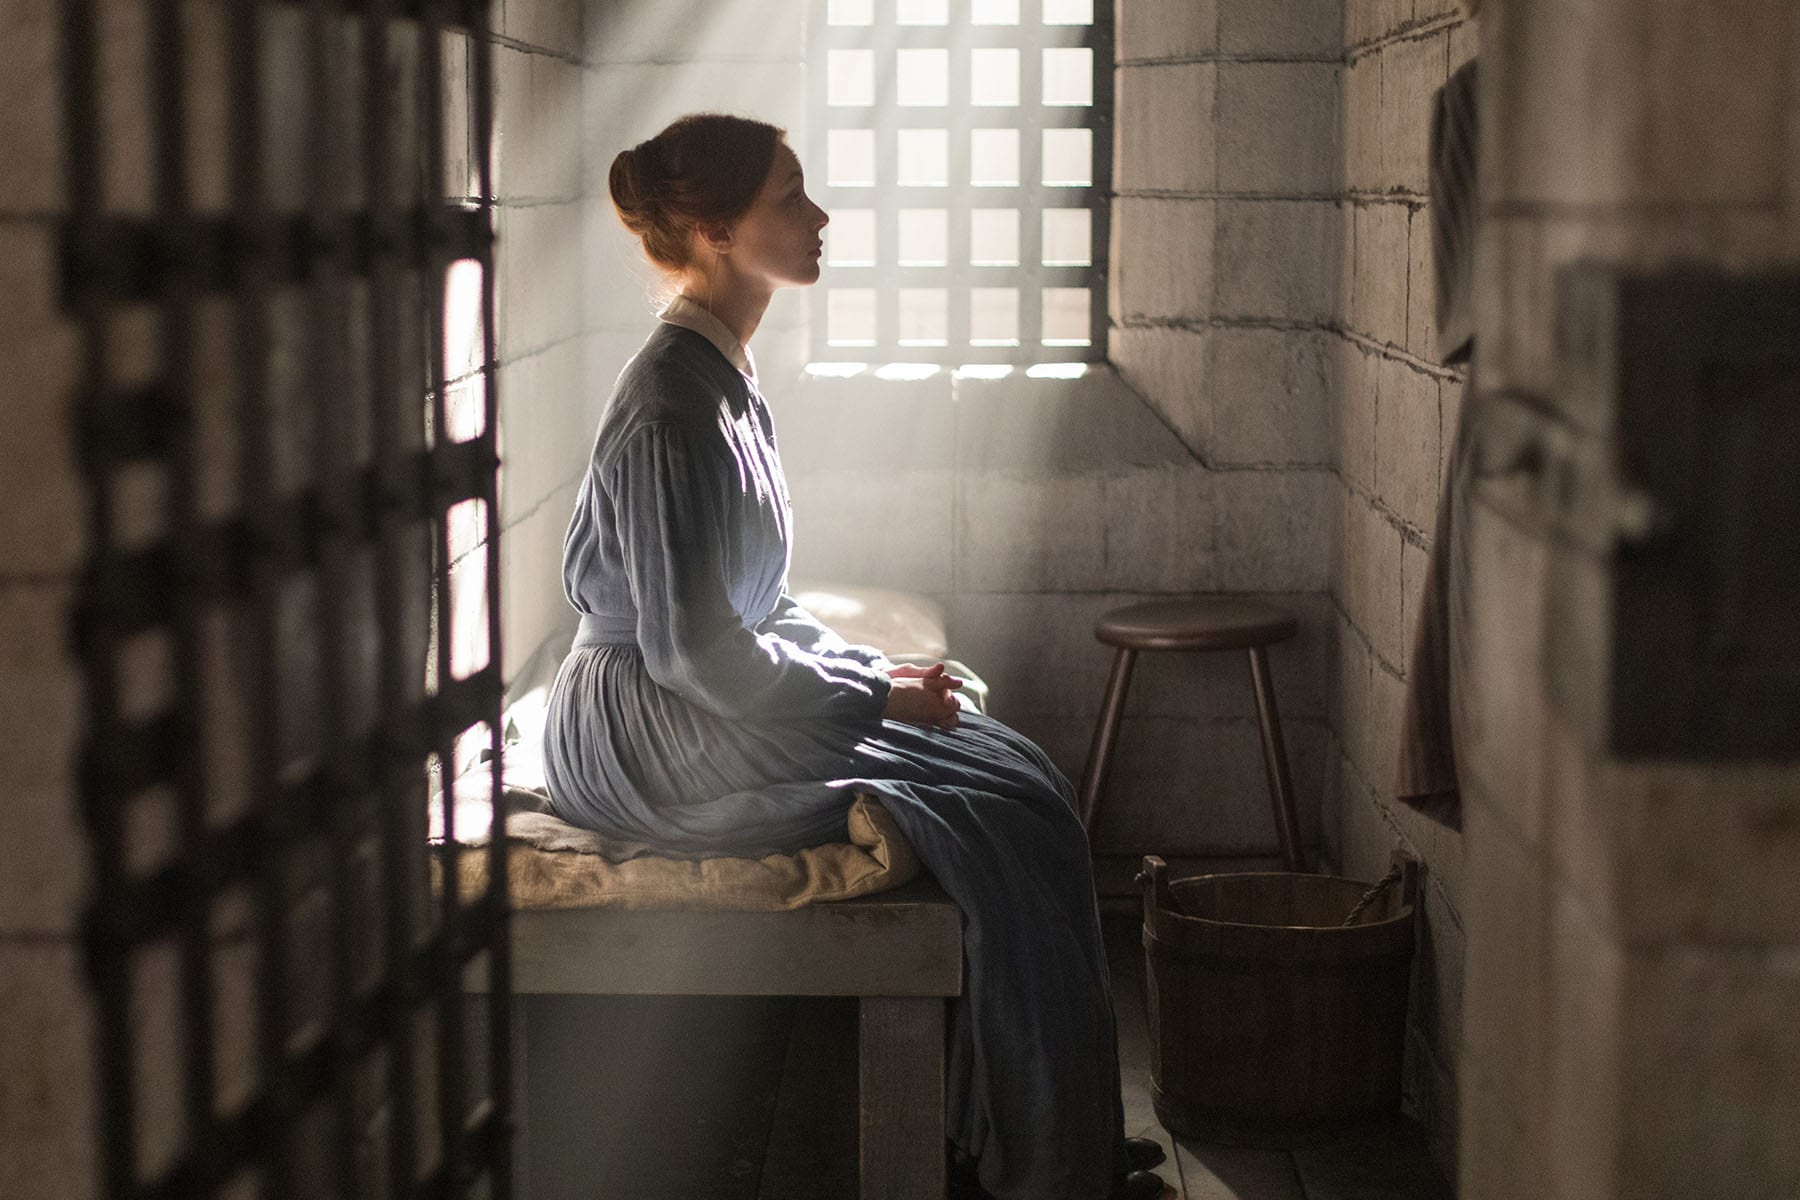 'Alias Grace' follows the story of an Irish immigrant who was convicted of the brutal murders of their employer and his housekeeper.